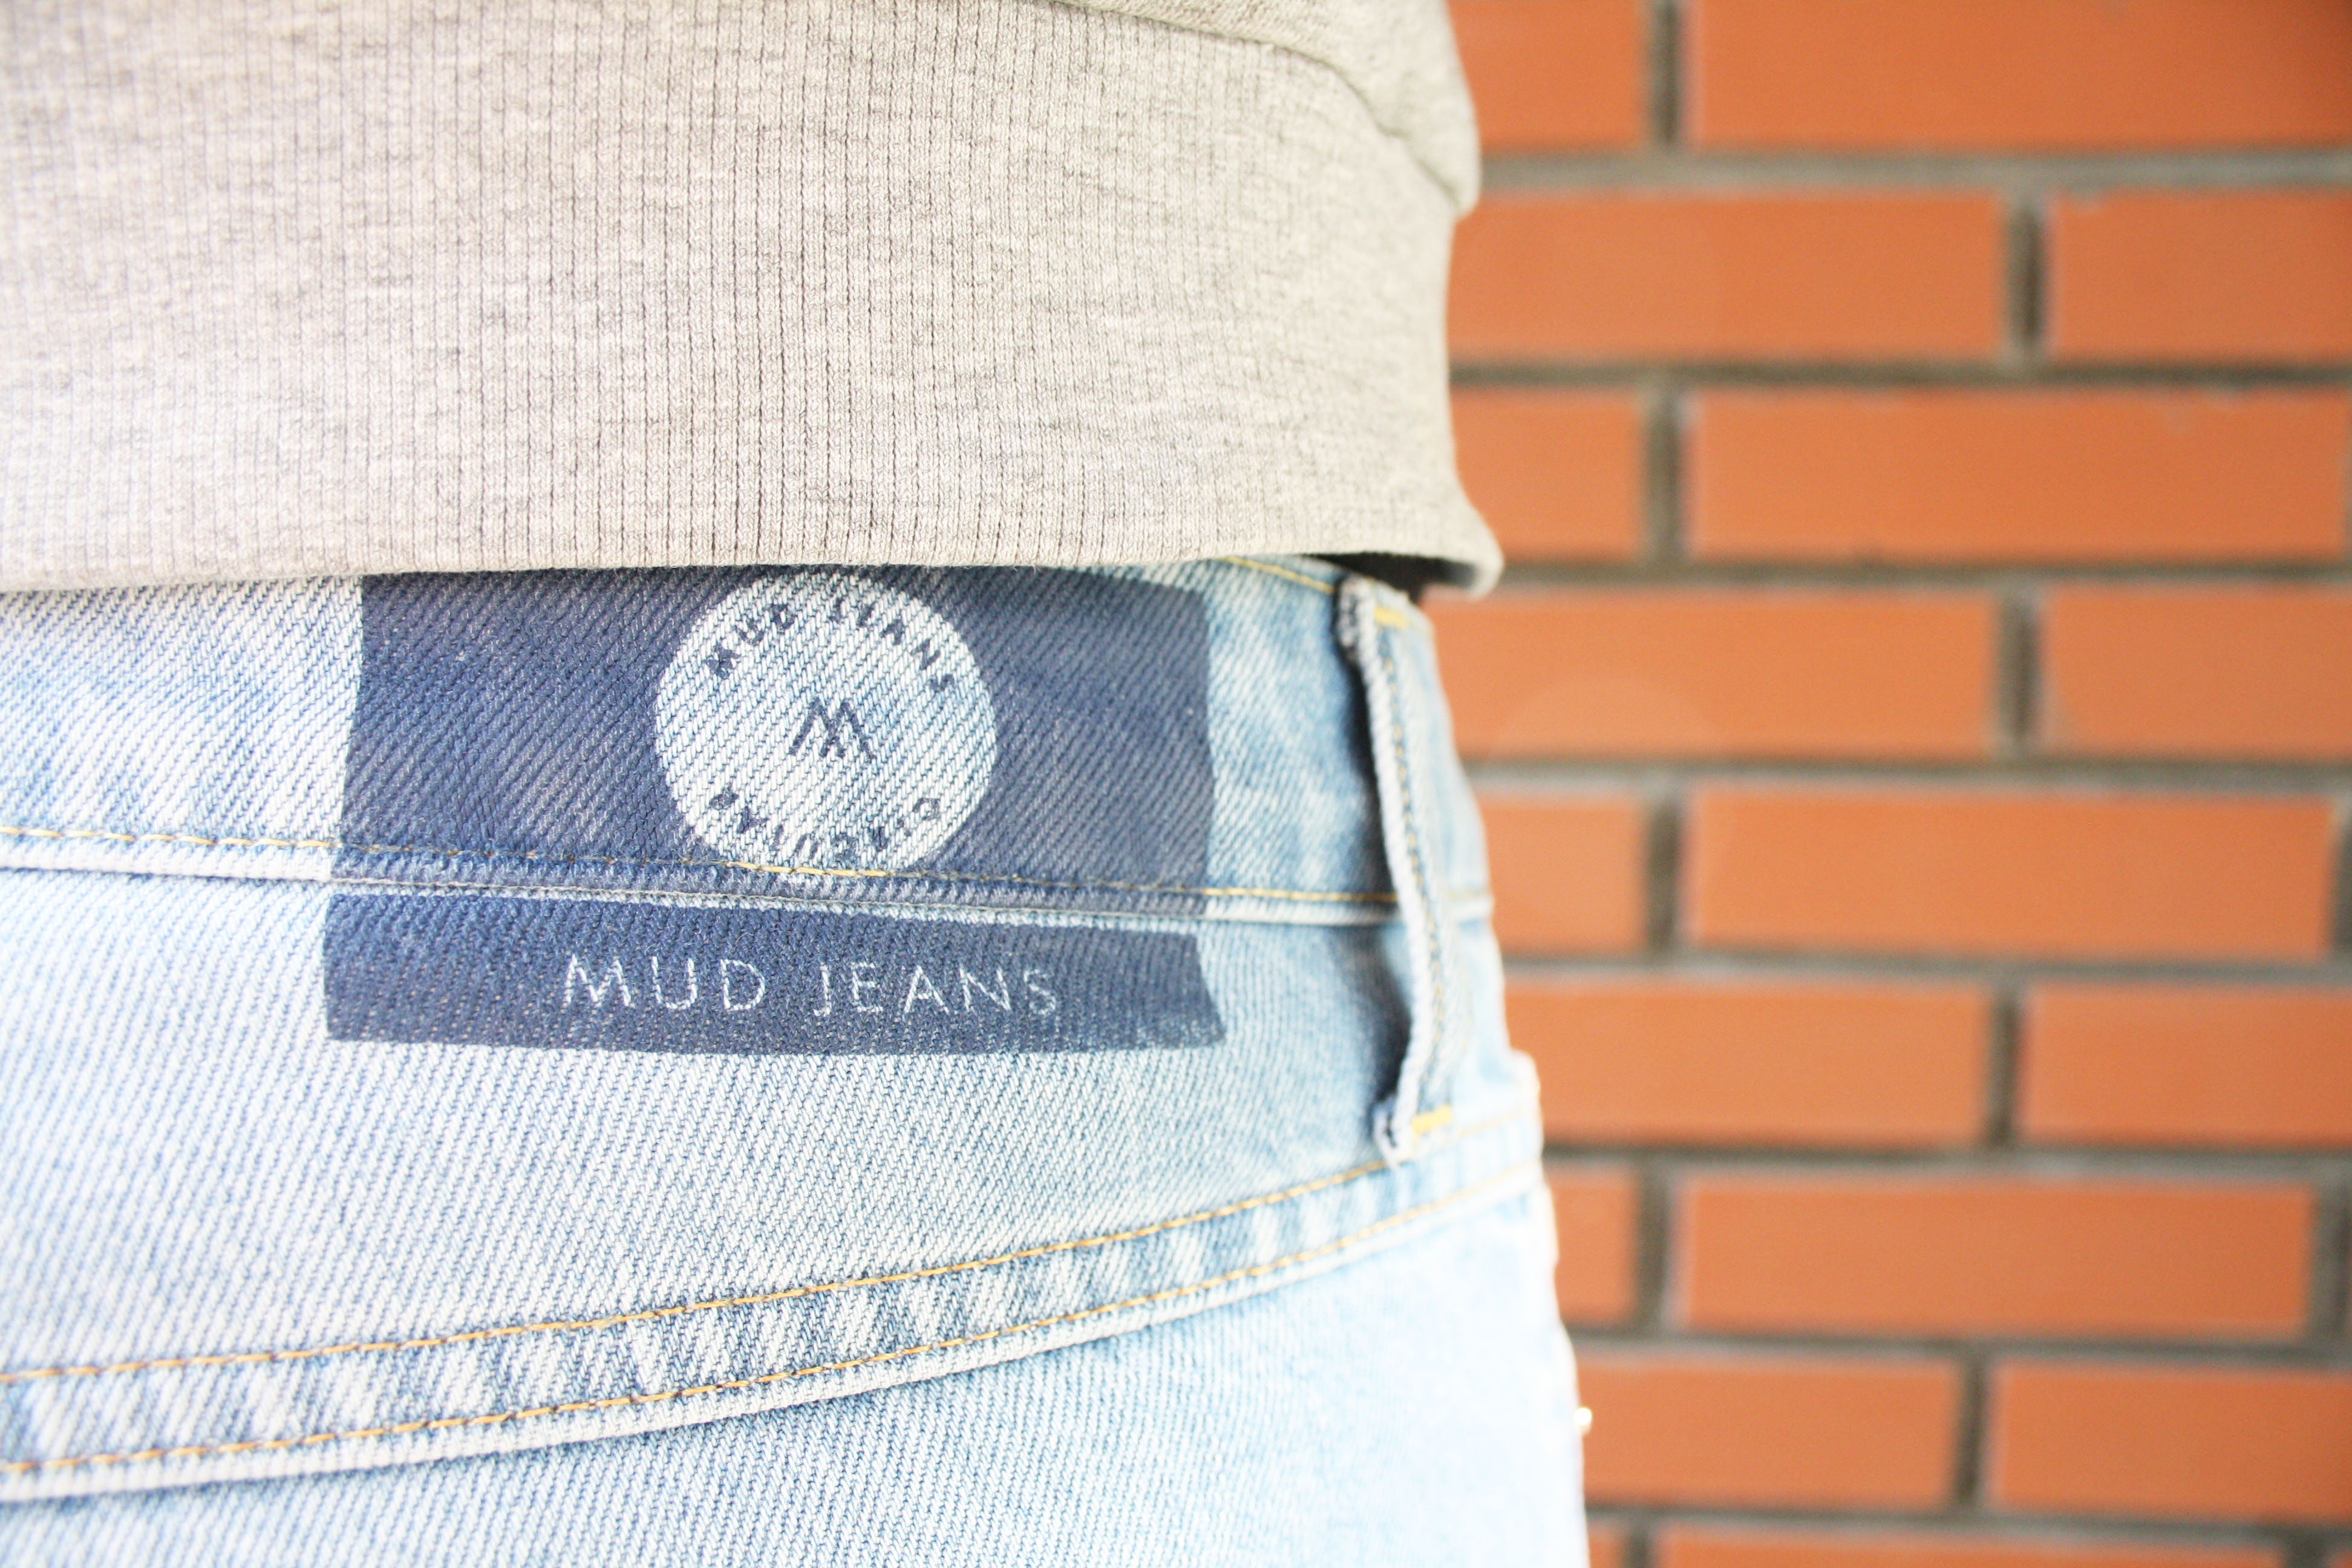 mud jeans review